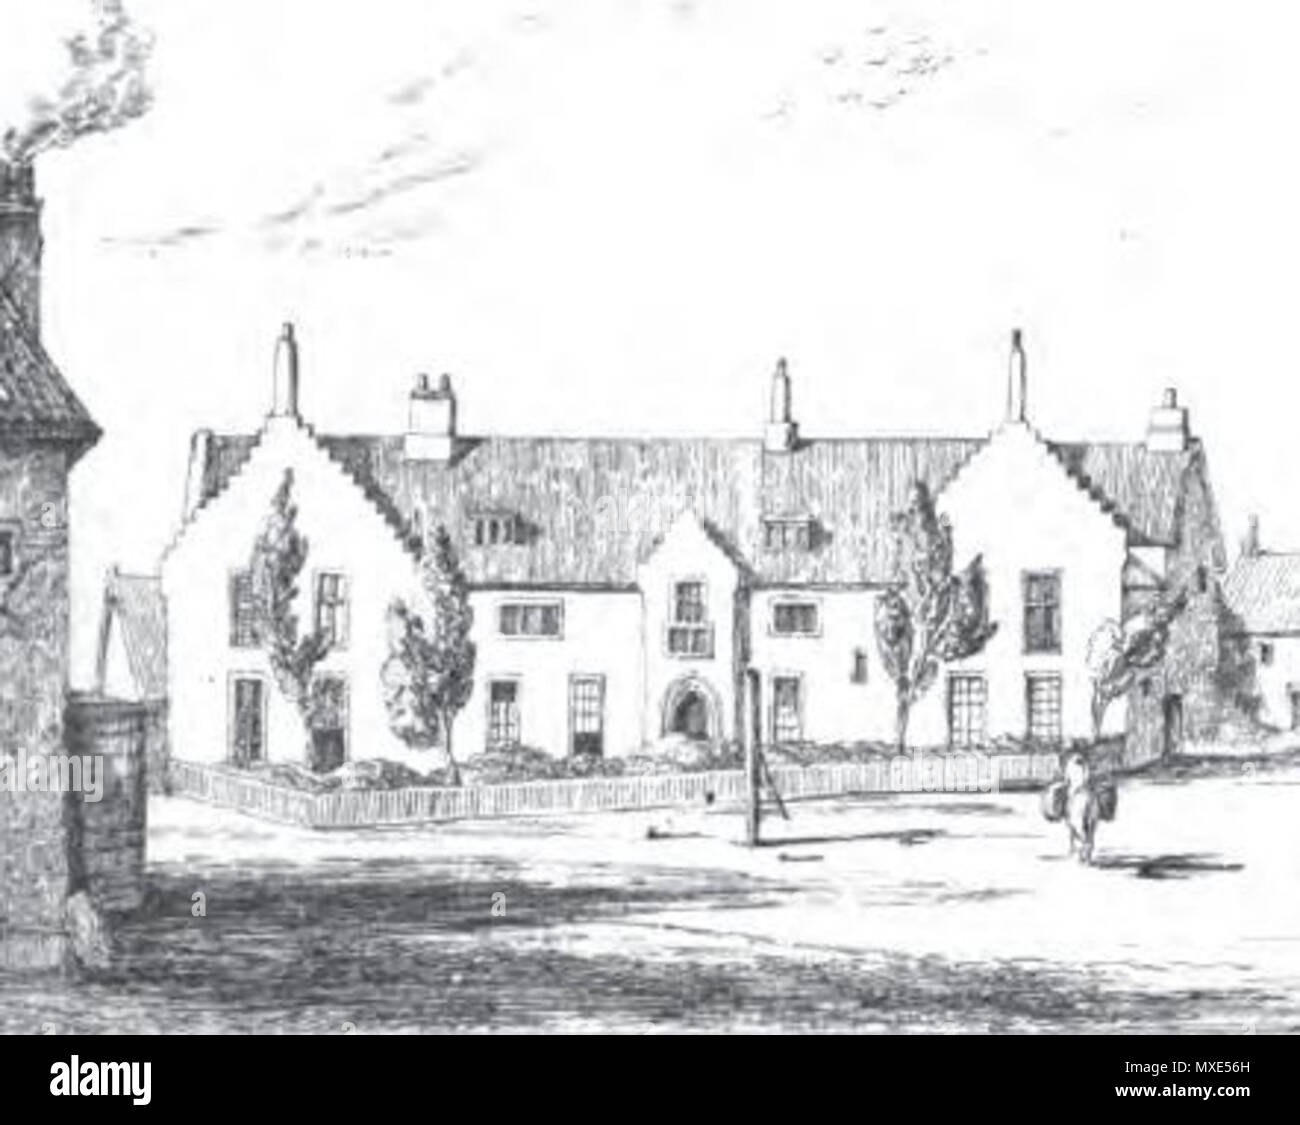 . English: Illustration of Gresham's School, Holt, from John William Burgon's The Life and Times of Sir Thomas Gresham (1839) 'from a sketch made on the spot in 1838' (detail). 1839 engraving from a sketch dated 1838. Unknown 455 Old School House, Holt, 1838 - Stock Image